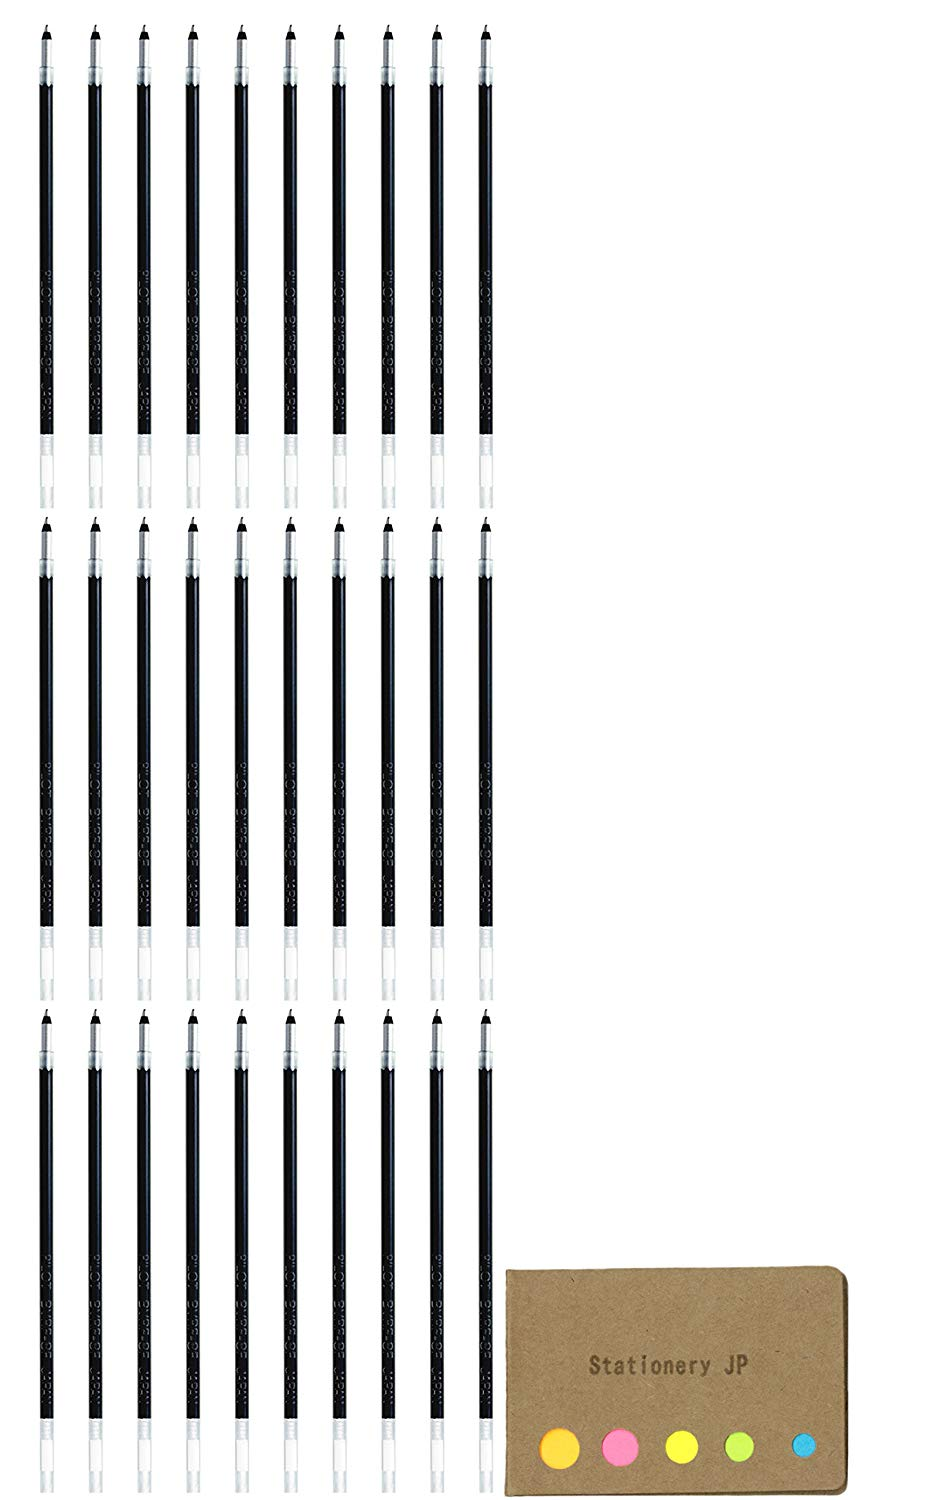 Pilot Acroball Advanced Ink Refill for Dr. Grip 4+1 Multifunction Ballpoint Pen, Extra Fine Point 0.7mm, Black, 30-pack, Sticky Notes Value Set